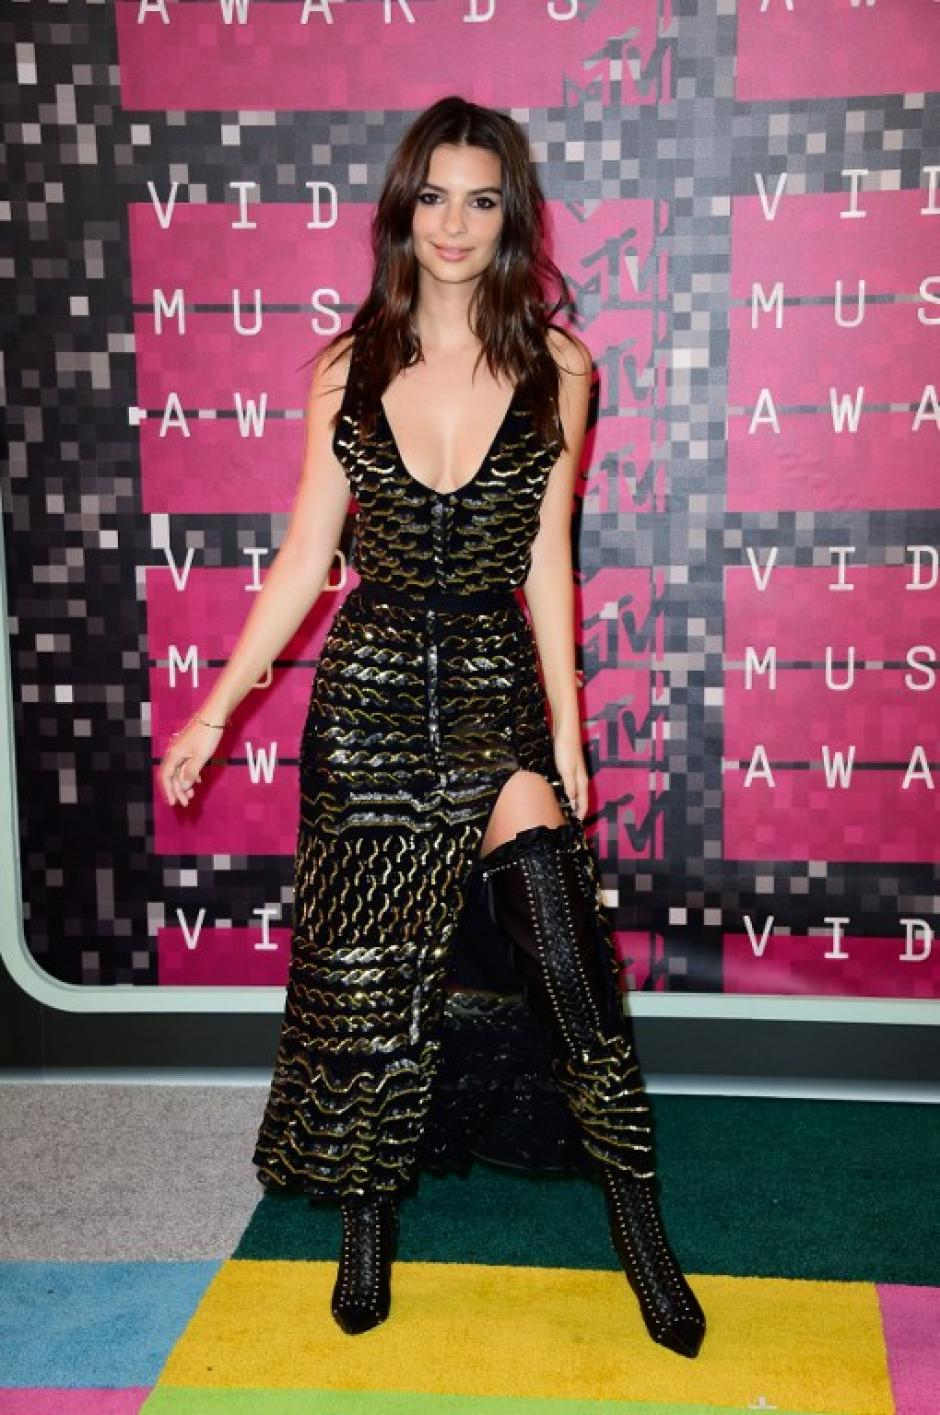 La actriz y modelo Emily Ratajkowski asiste a los MTV Video Music Awards. (Foto: AFP)